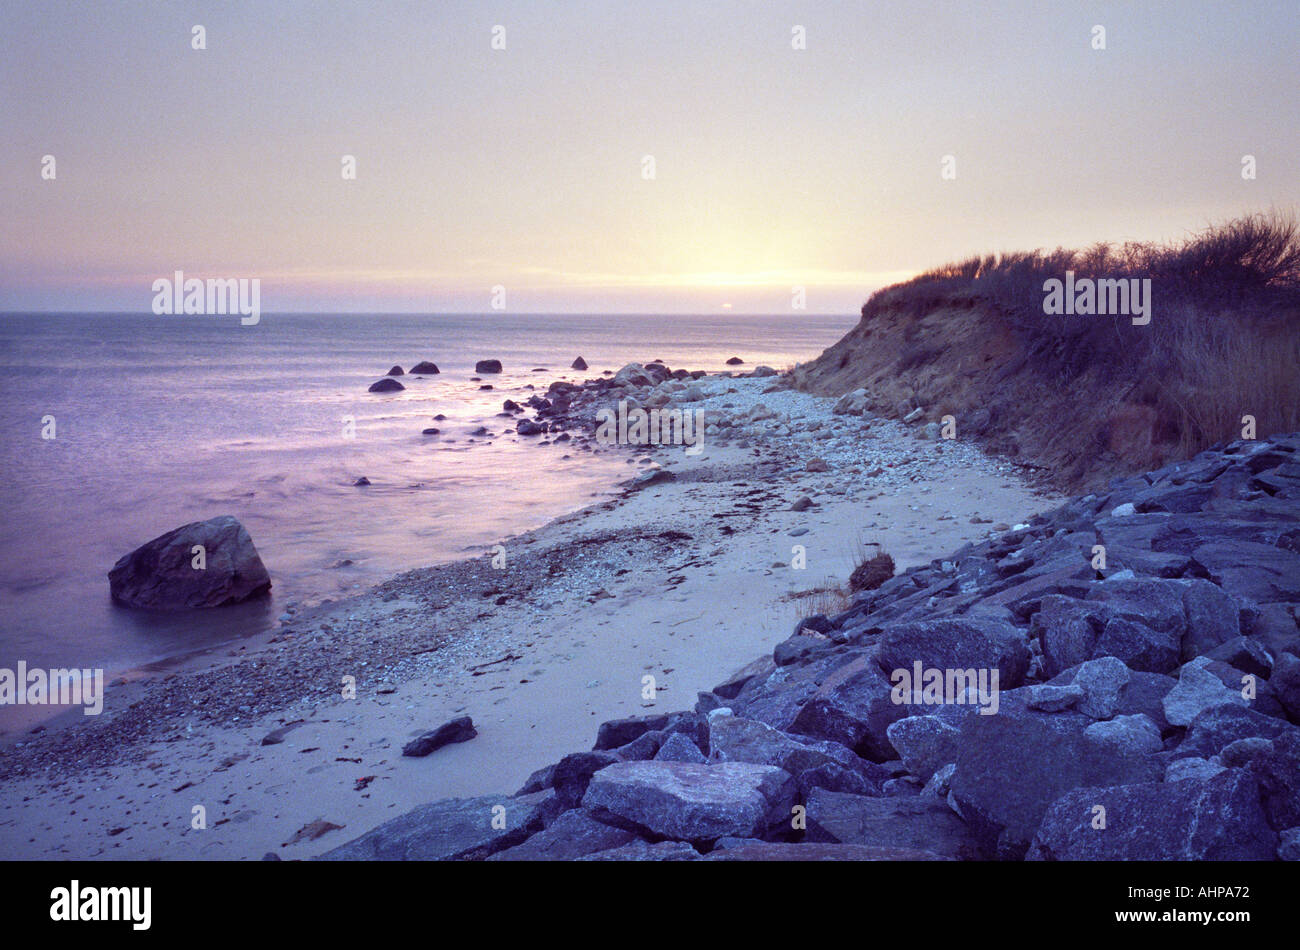 Block Island Rhode Island USA RI US Beach with rocks and sea - Stock Image